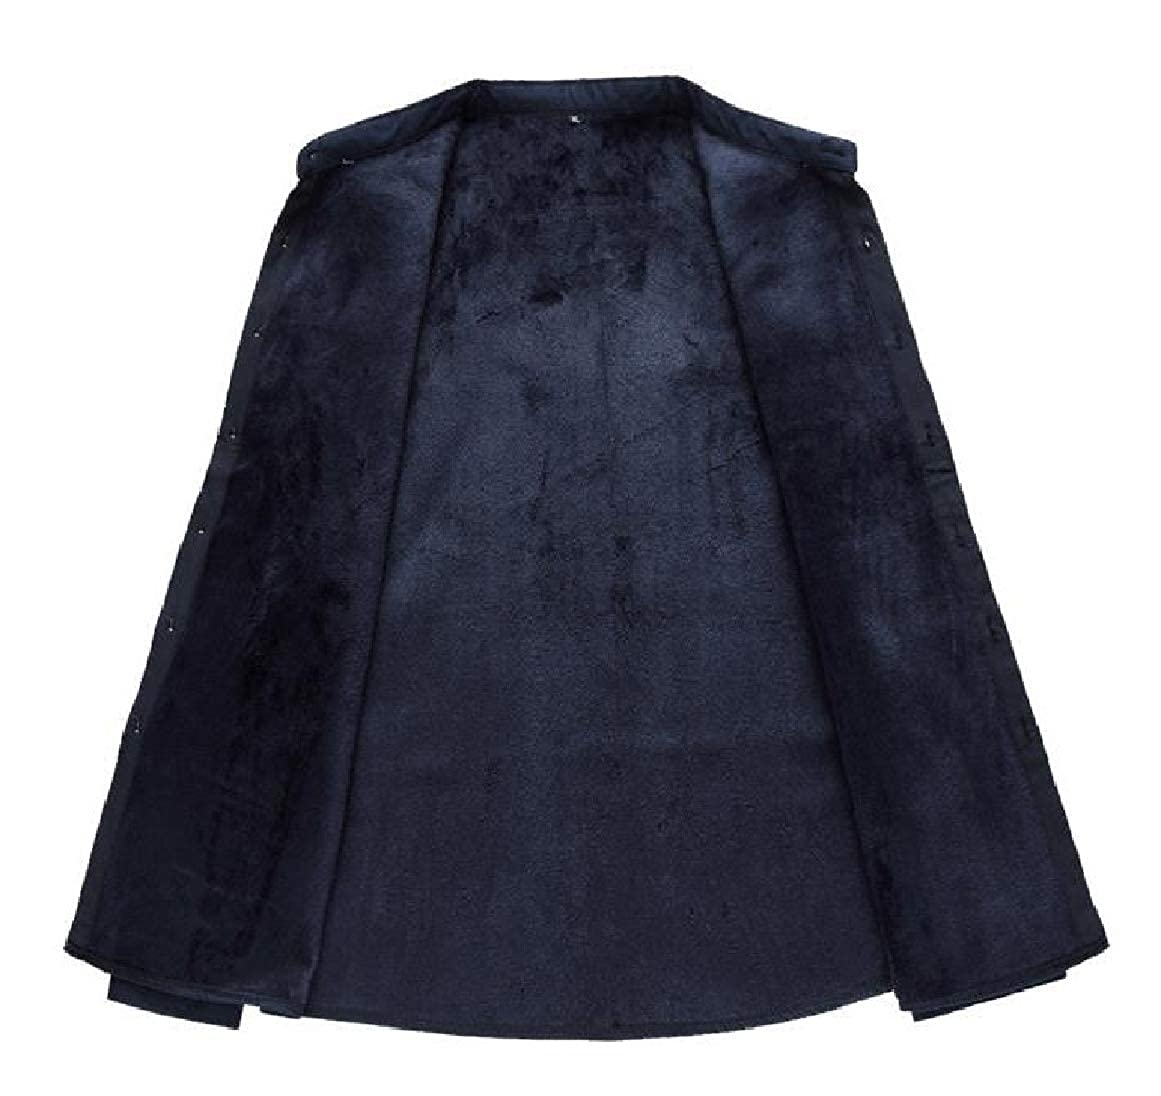 RingBong Mens Plus-Size Chinese Style Plus Velvet Thicken Long-Sleeve Patterned Shirt